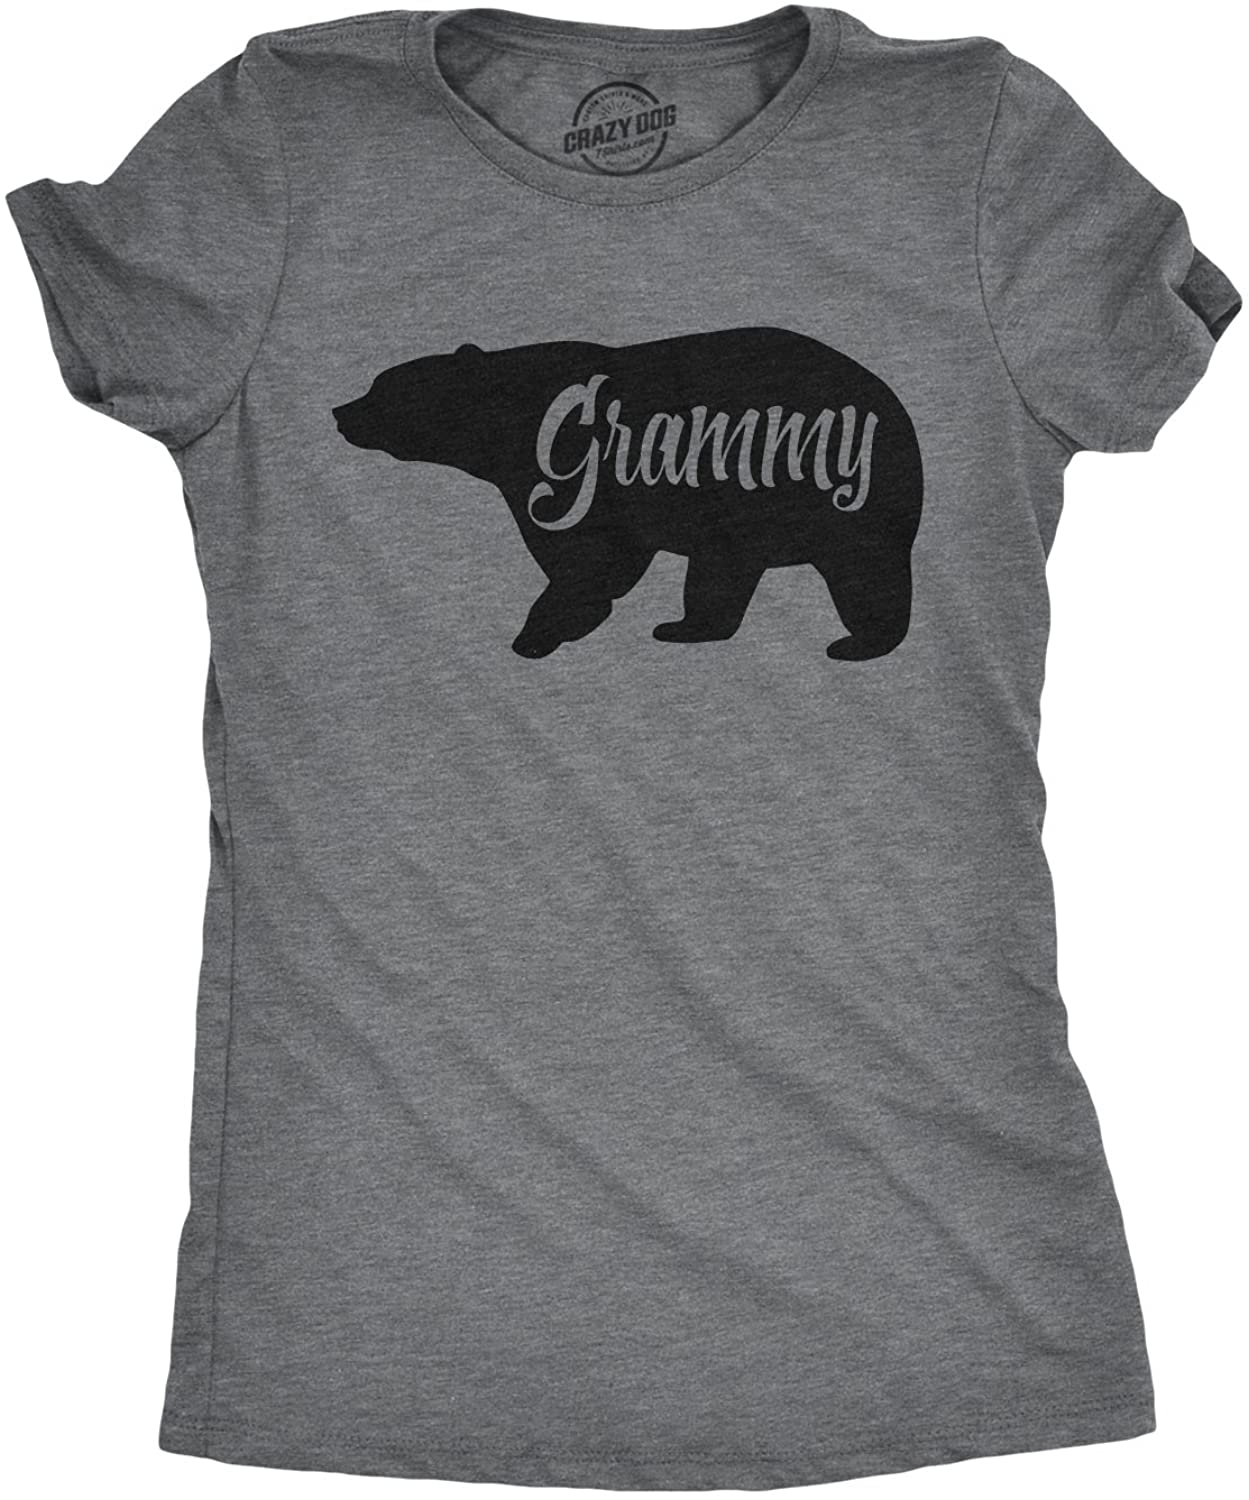 Womens Grammy Bear T Shirt Cute Family Matching Funny Cool Graphic Grandma Tee